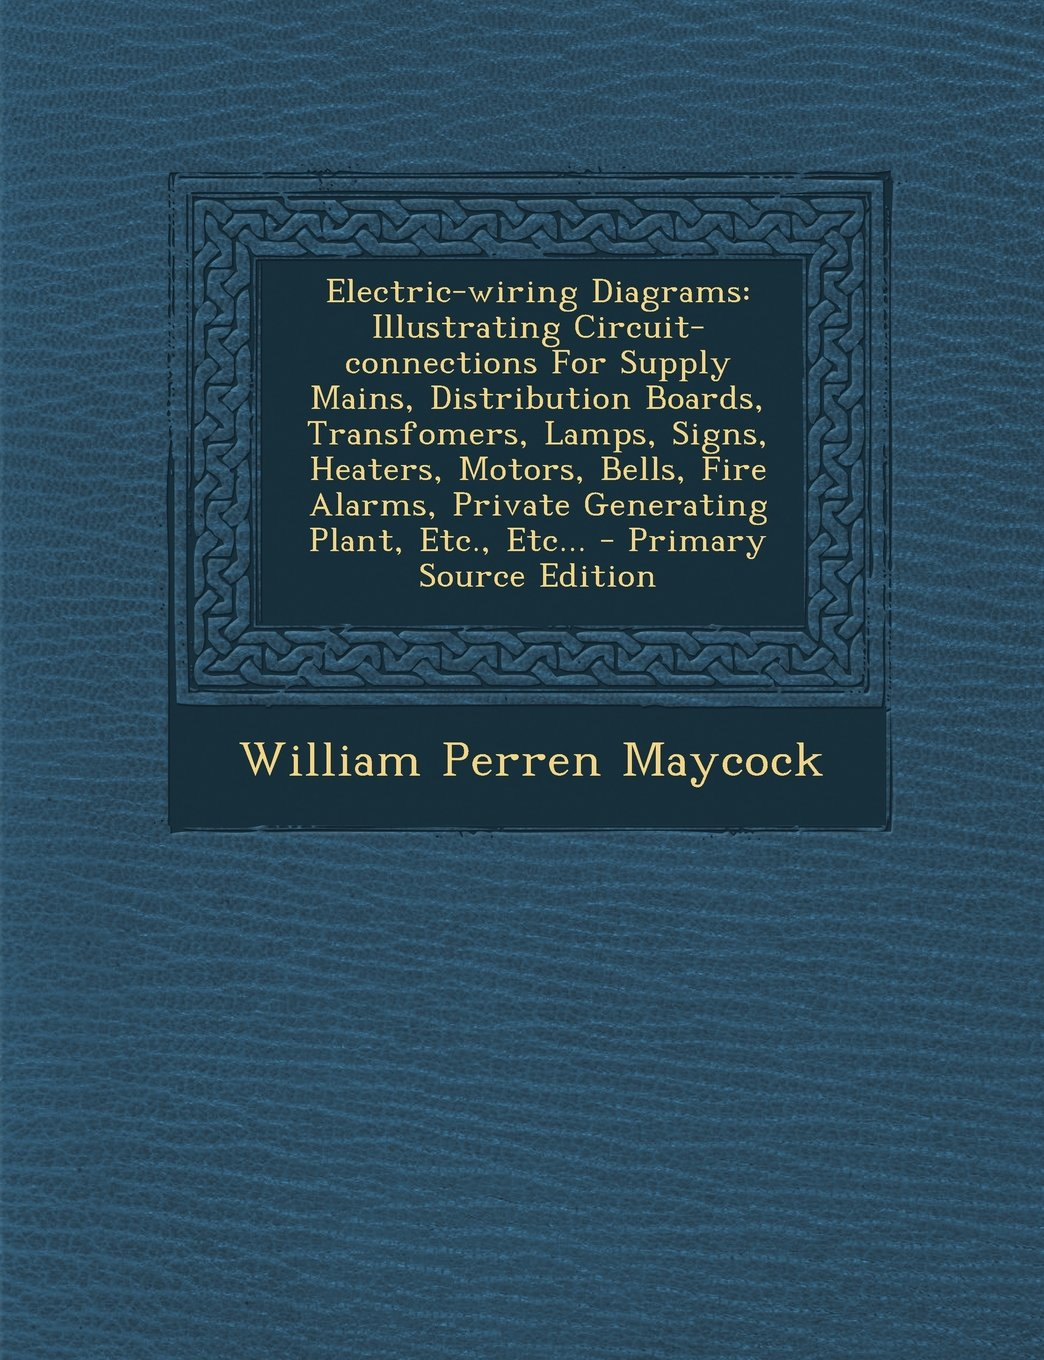 electric-wiring diagrams: illustrating circuit-connections for supply  mains, distribution boards, transfomers, lamps, signs, heaters, motors, be  paperback